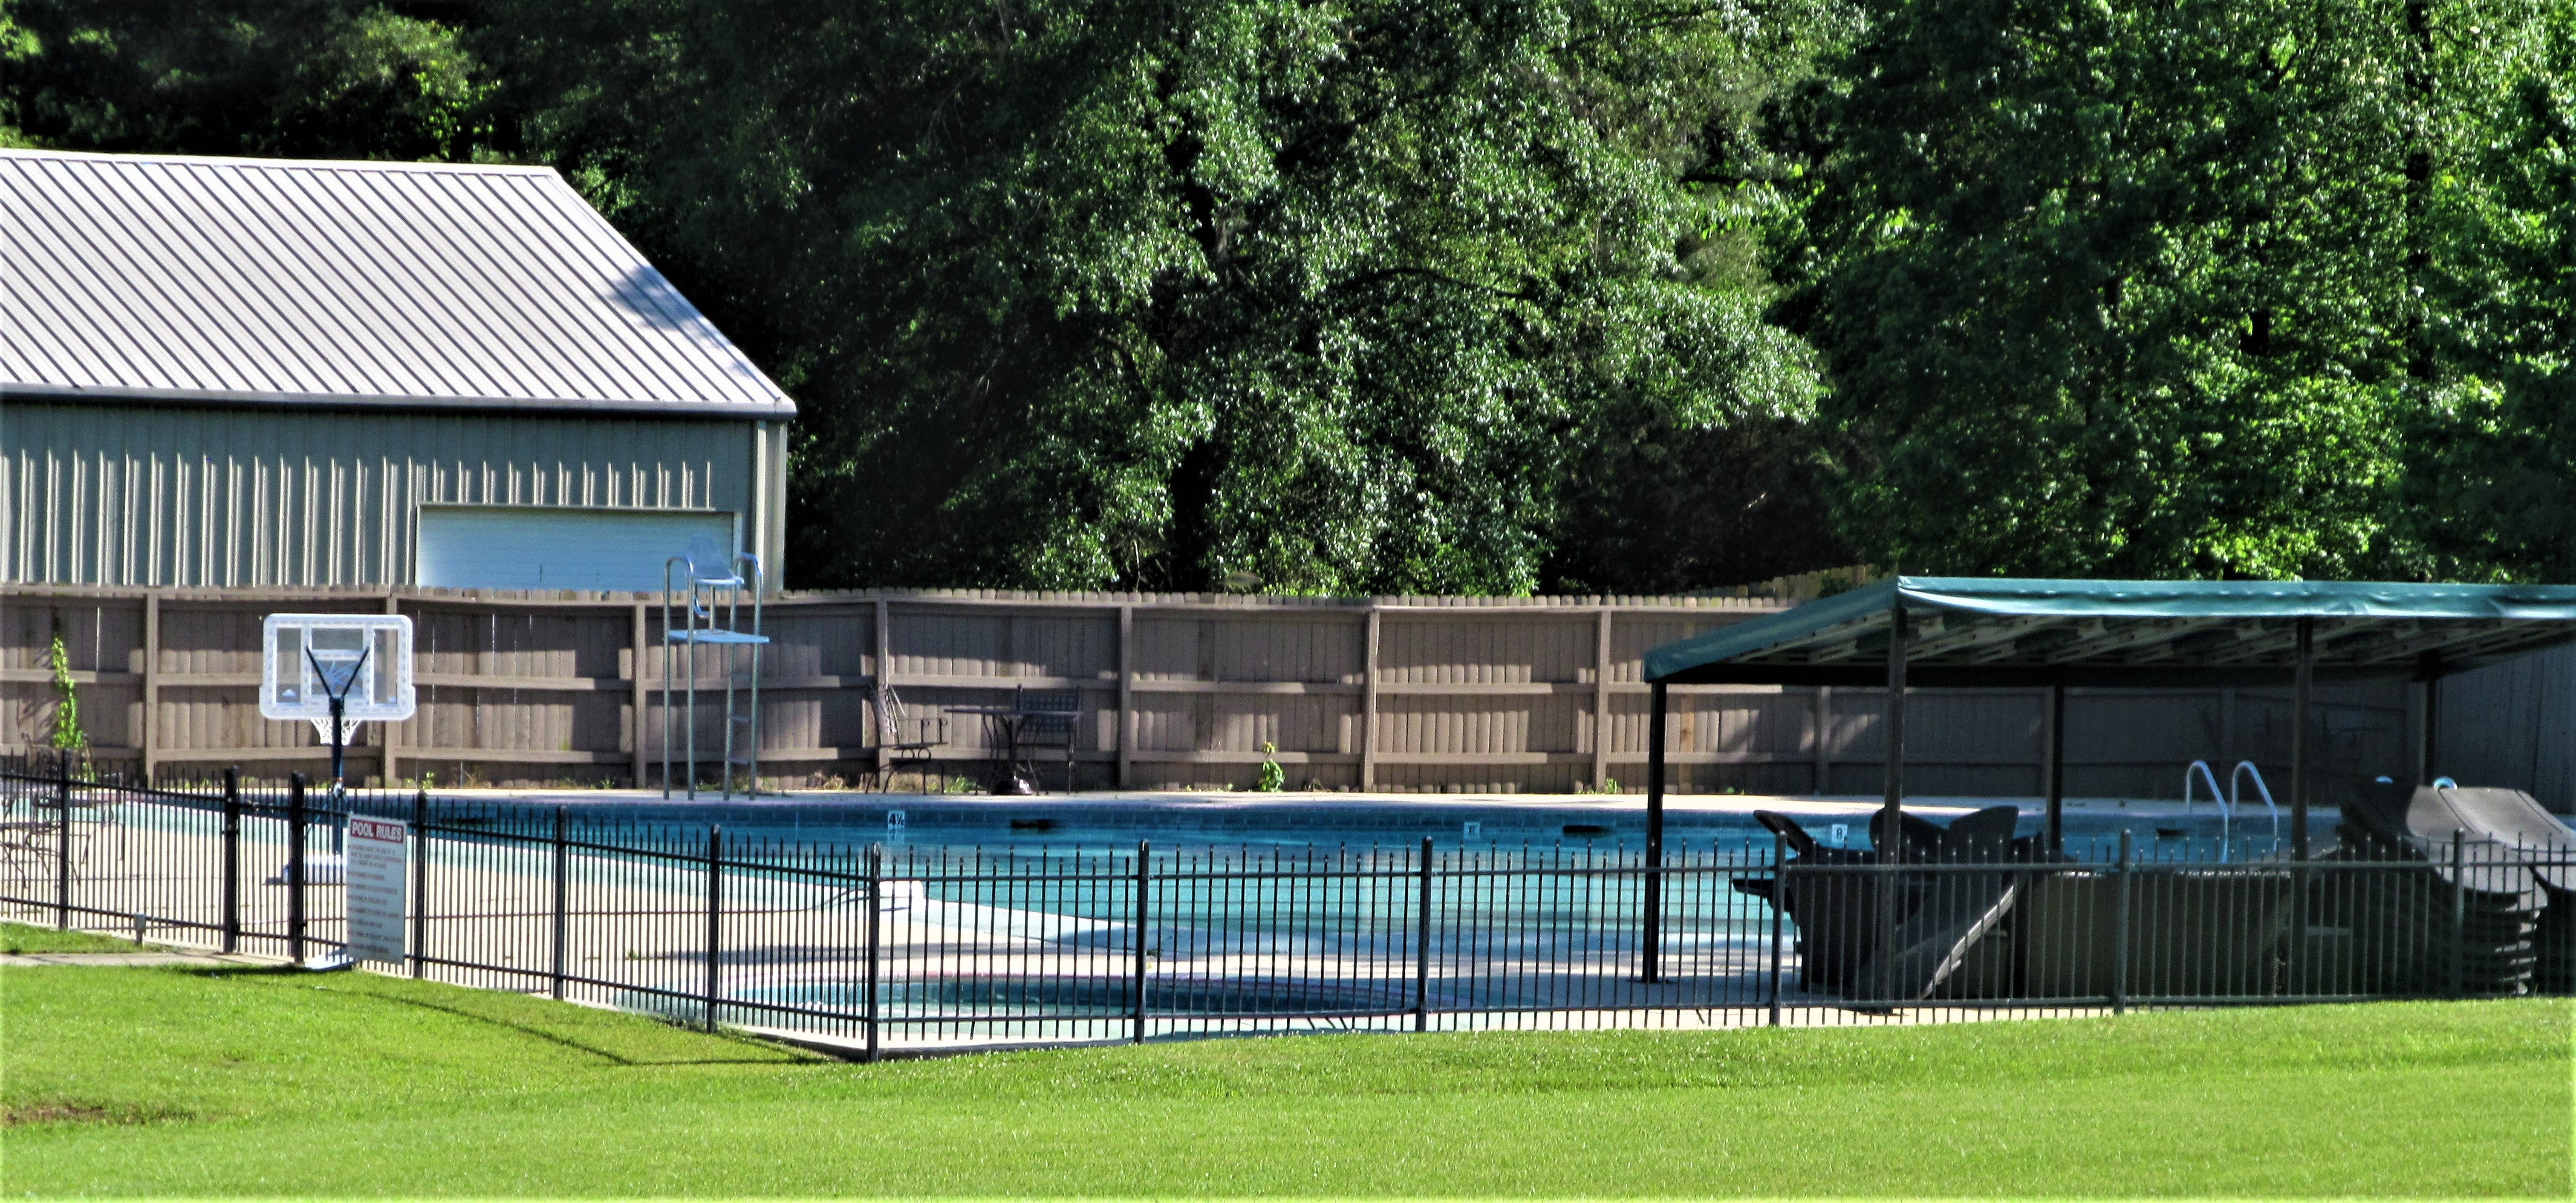 castlewoods pool may 6